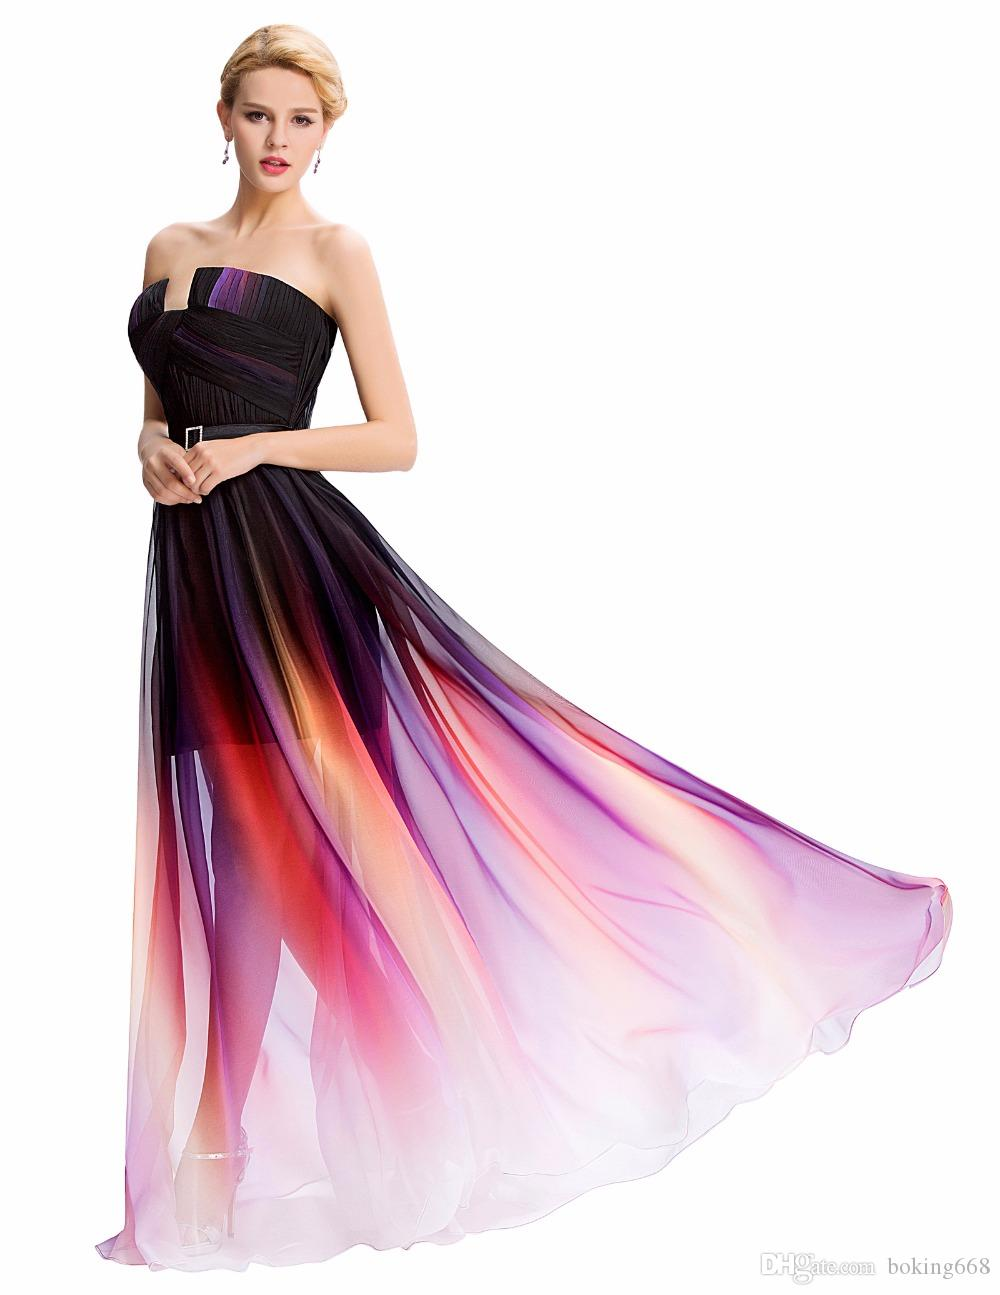 Ombre Colorful Long Prom Dresses Empire 2019 Luxurious Chiffon Formal Dress  Gown Floor Length Celebrity Ladies Prom Dress Evening Dresses Maternity Prom  ... 9995fadbd440